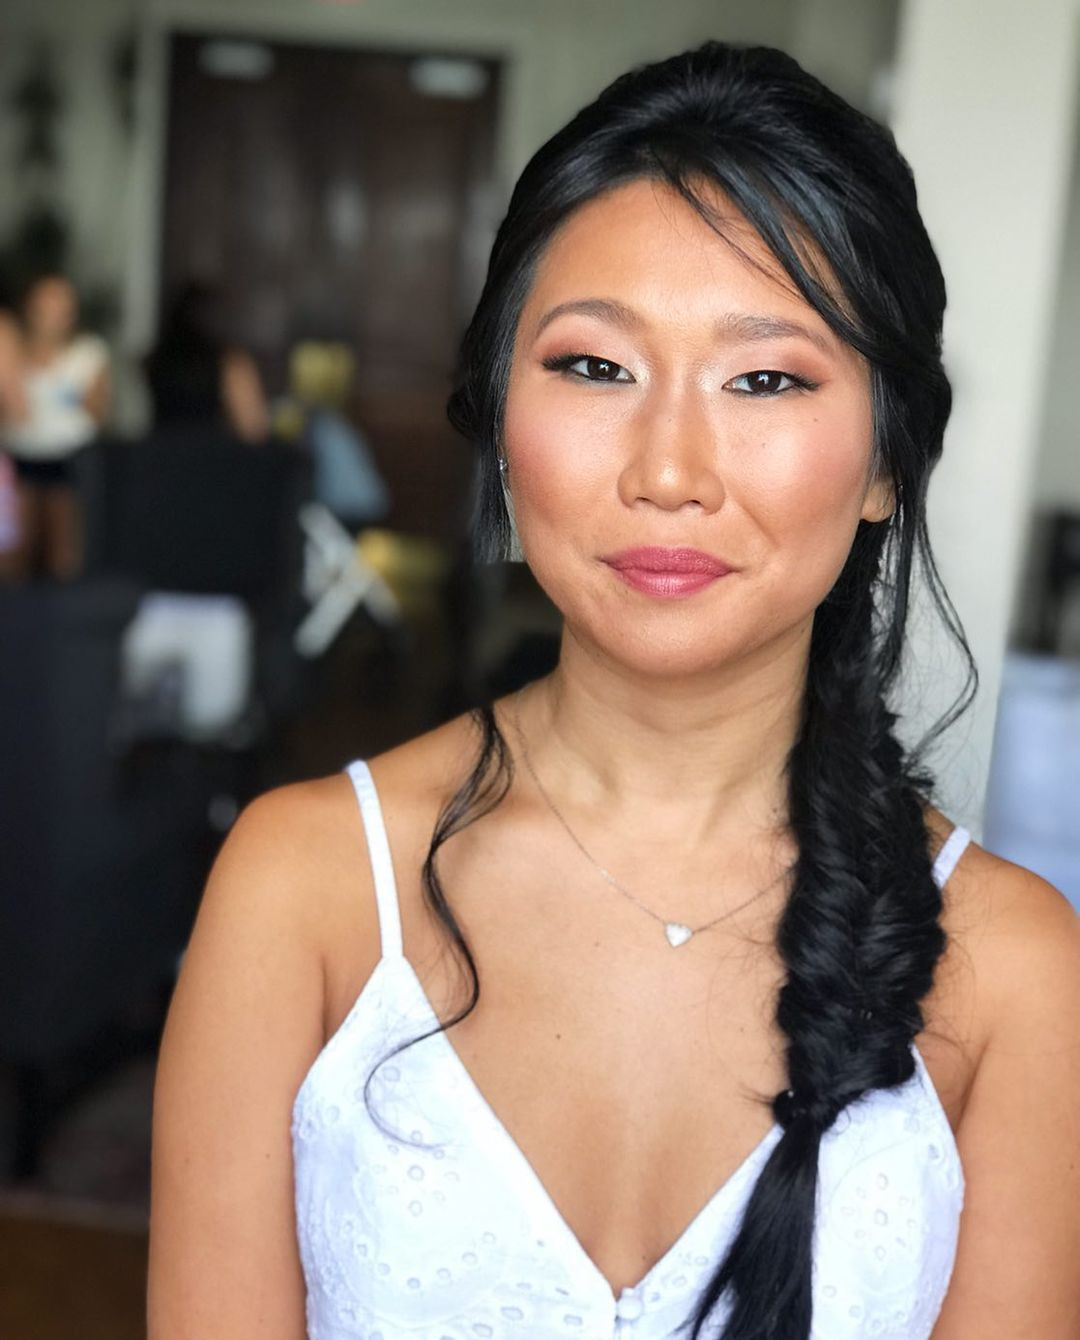 Bride smiling with simple, glowy makeup done and fishtail side braid.